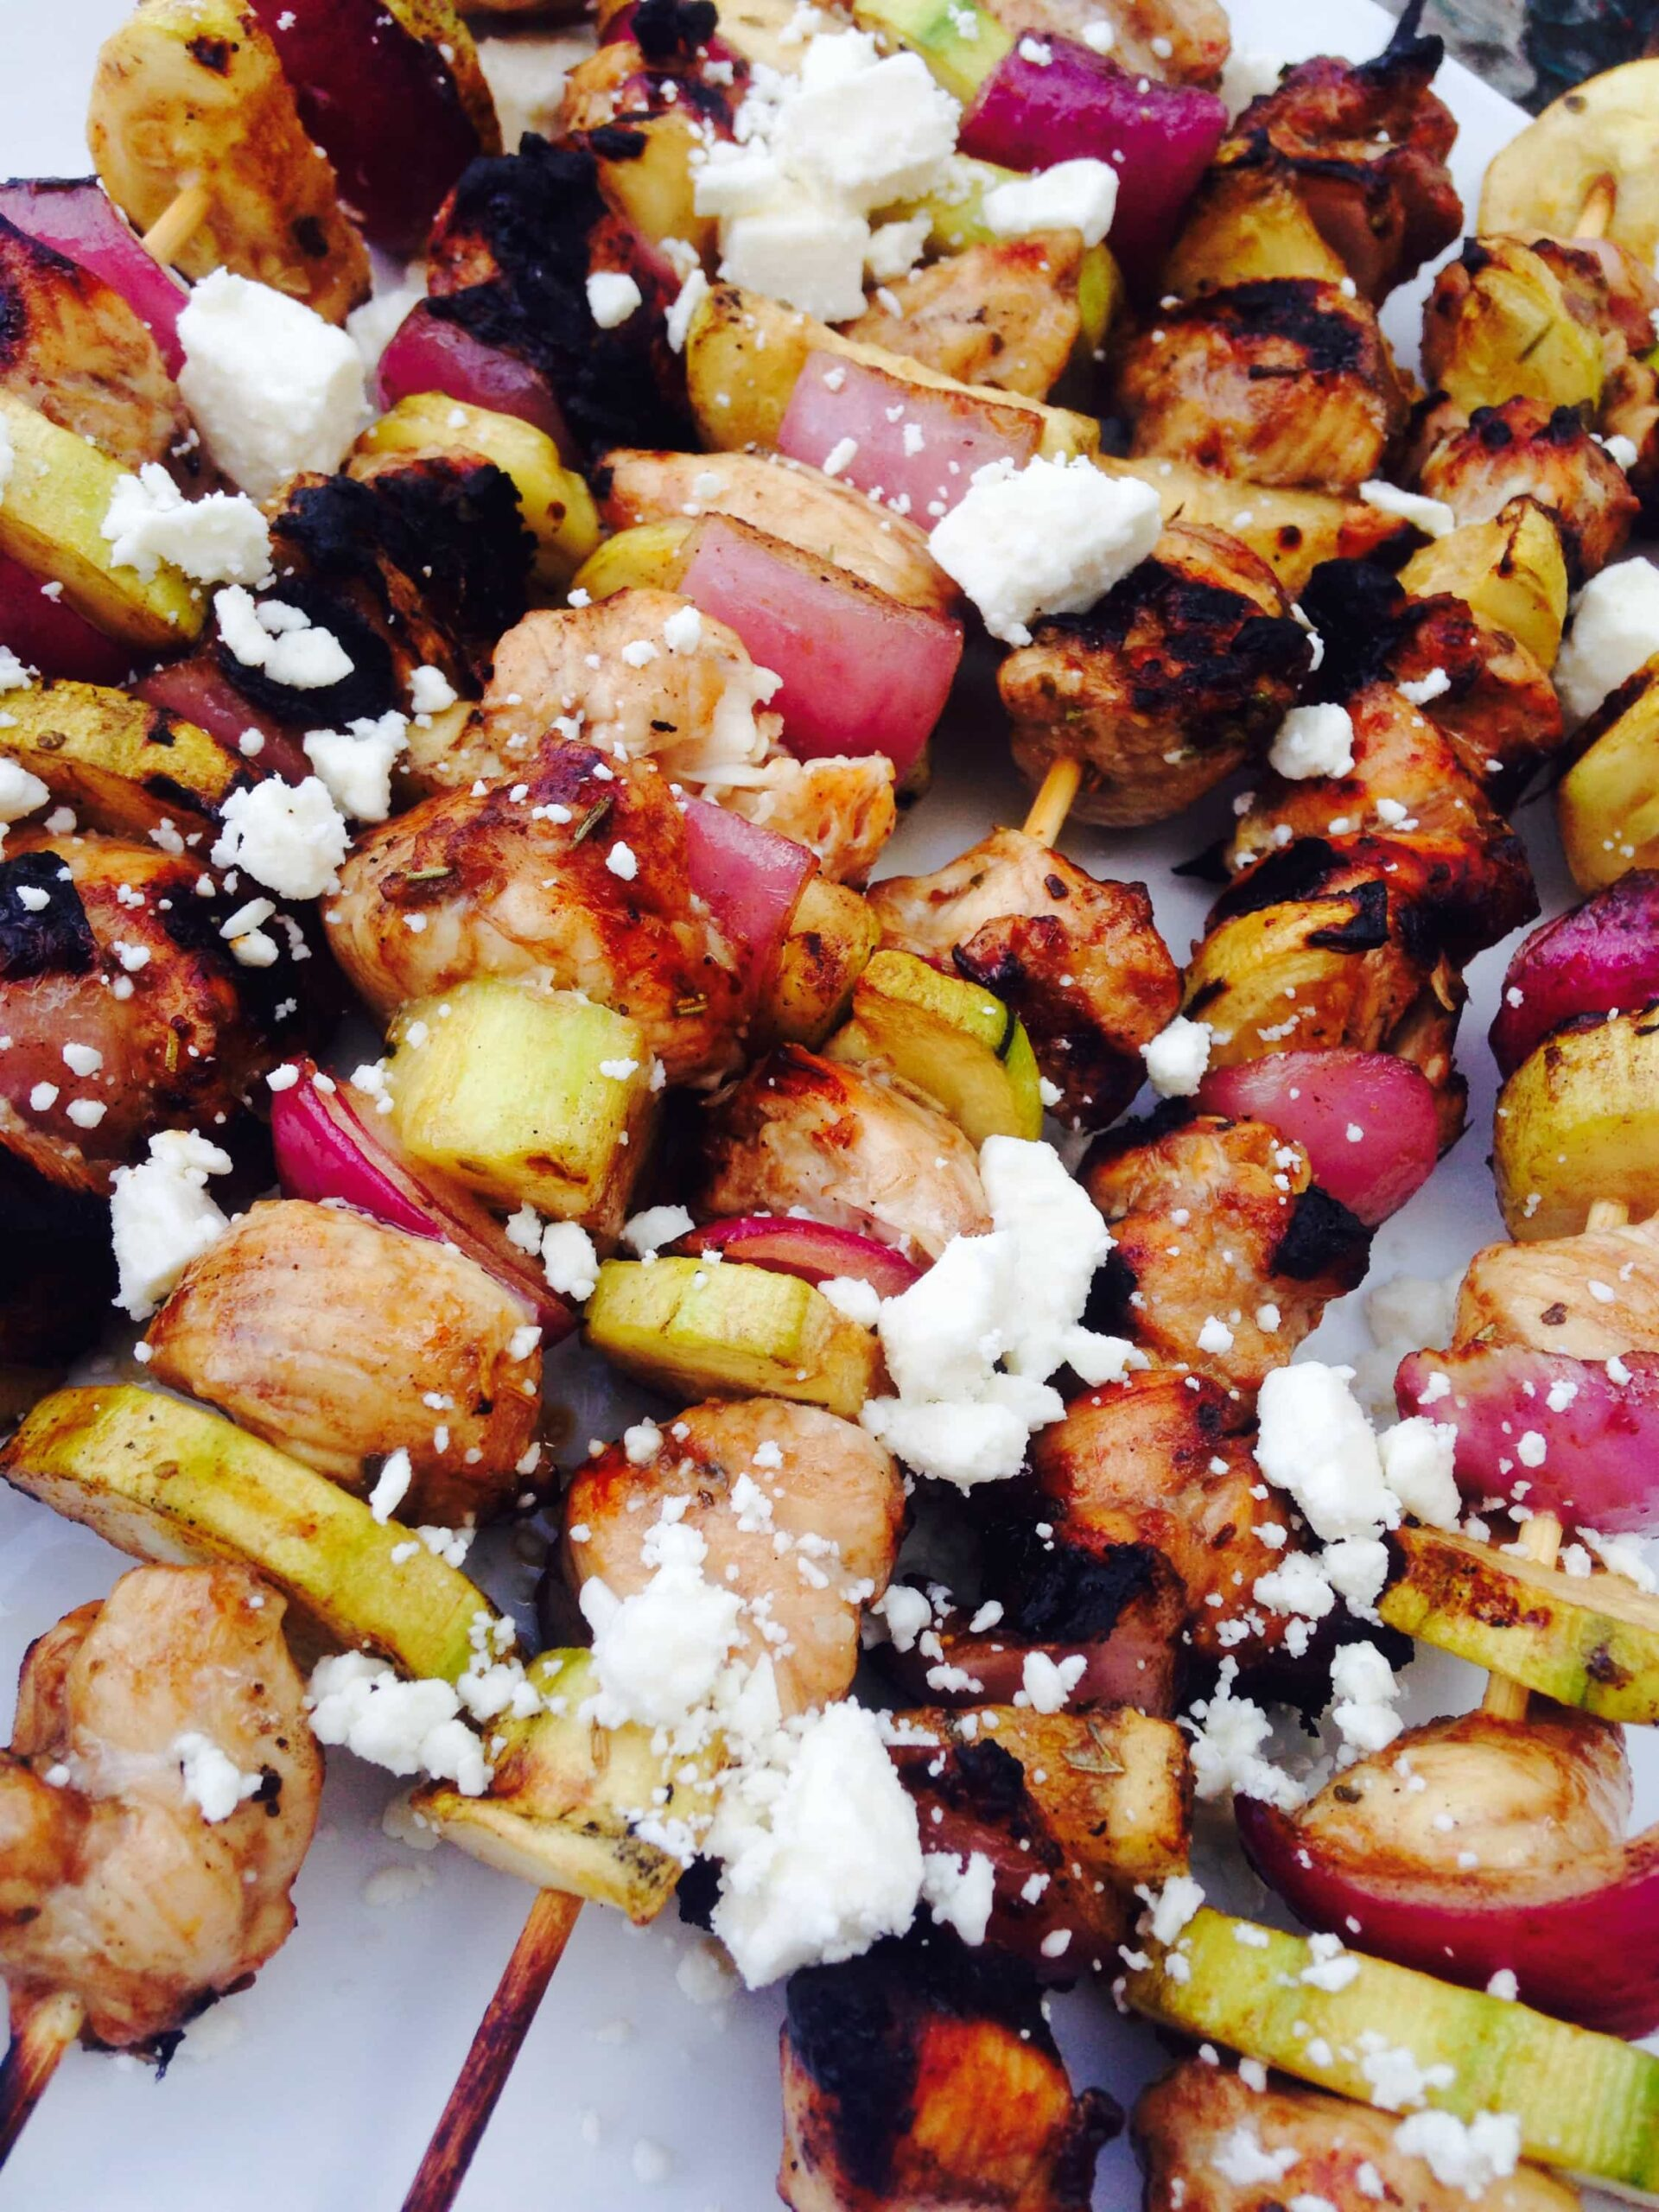 Balsamic Chicken And Zucchini Skewers - Confessions Of A Fit Foodie